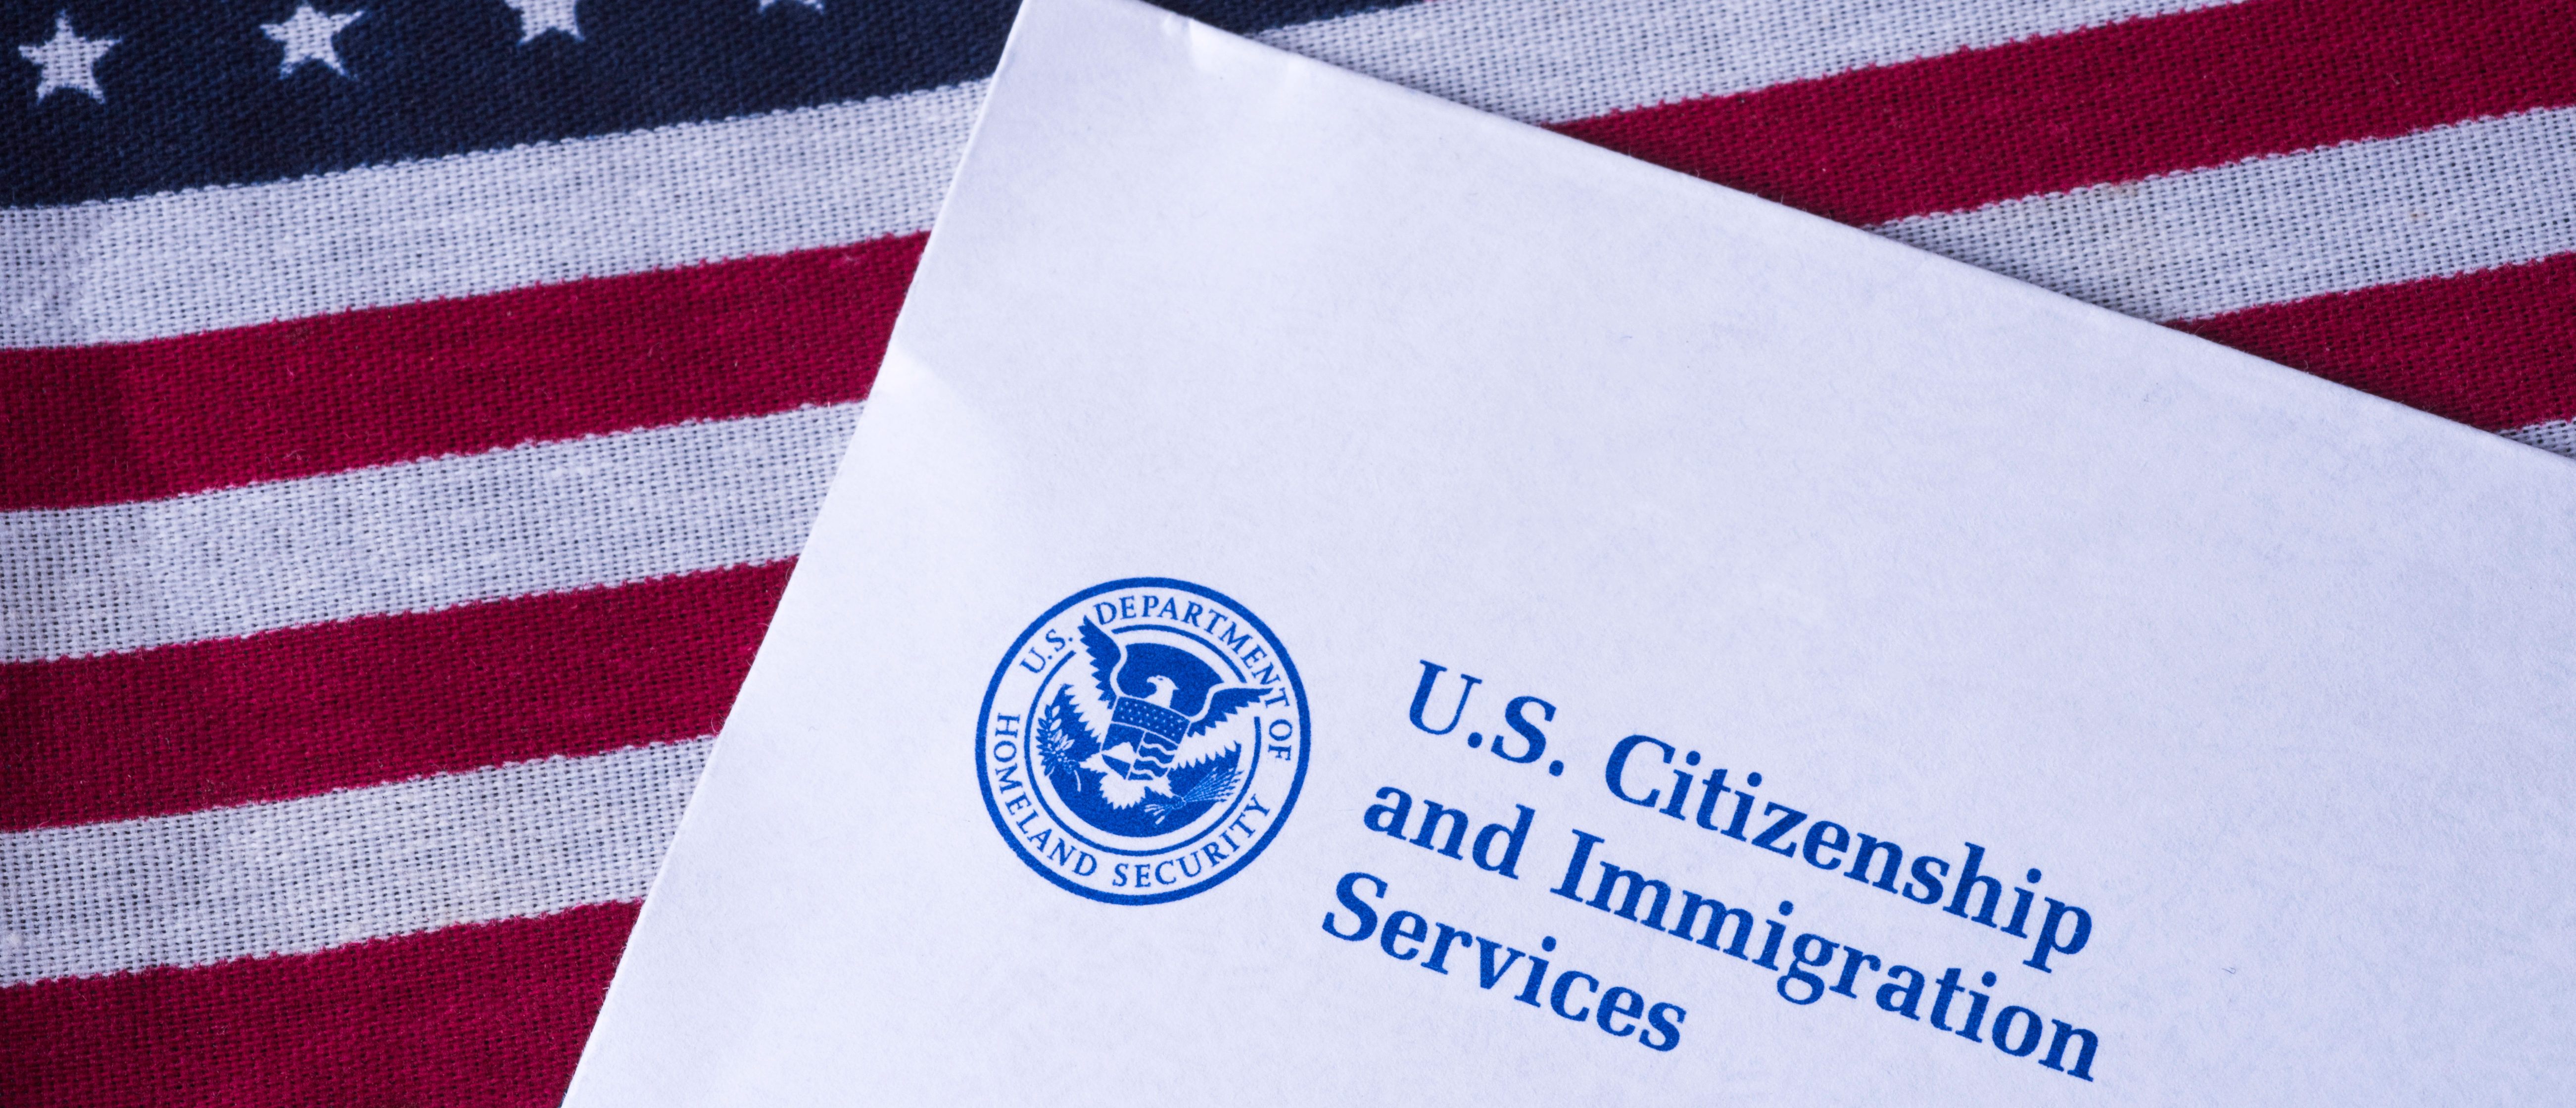 Letter from US Citizenship and Immigration Services on Flag of United States of America. Shutterstock.